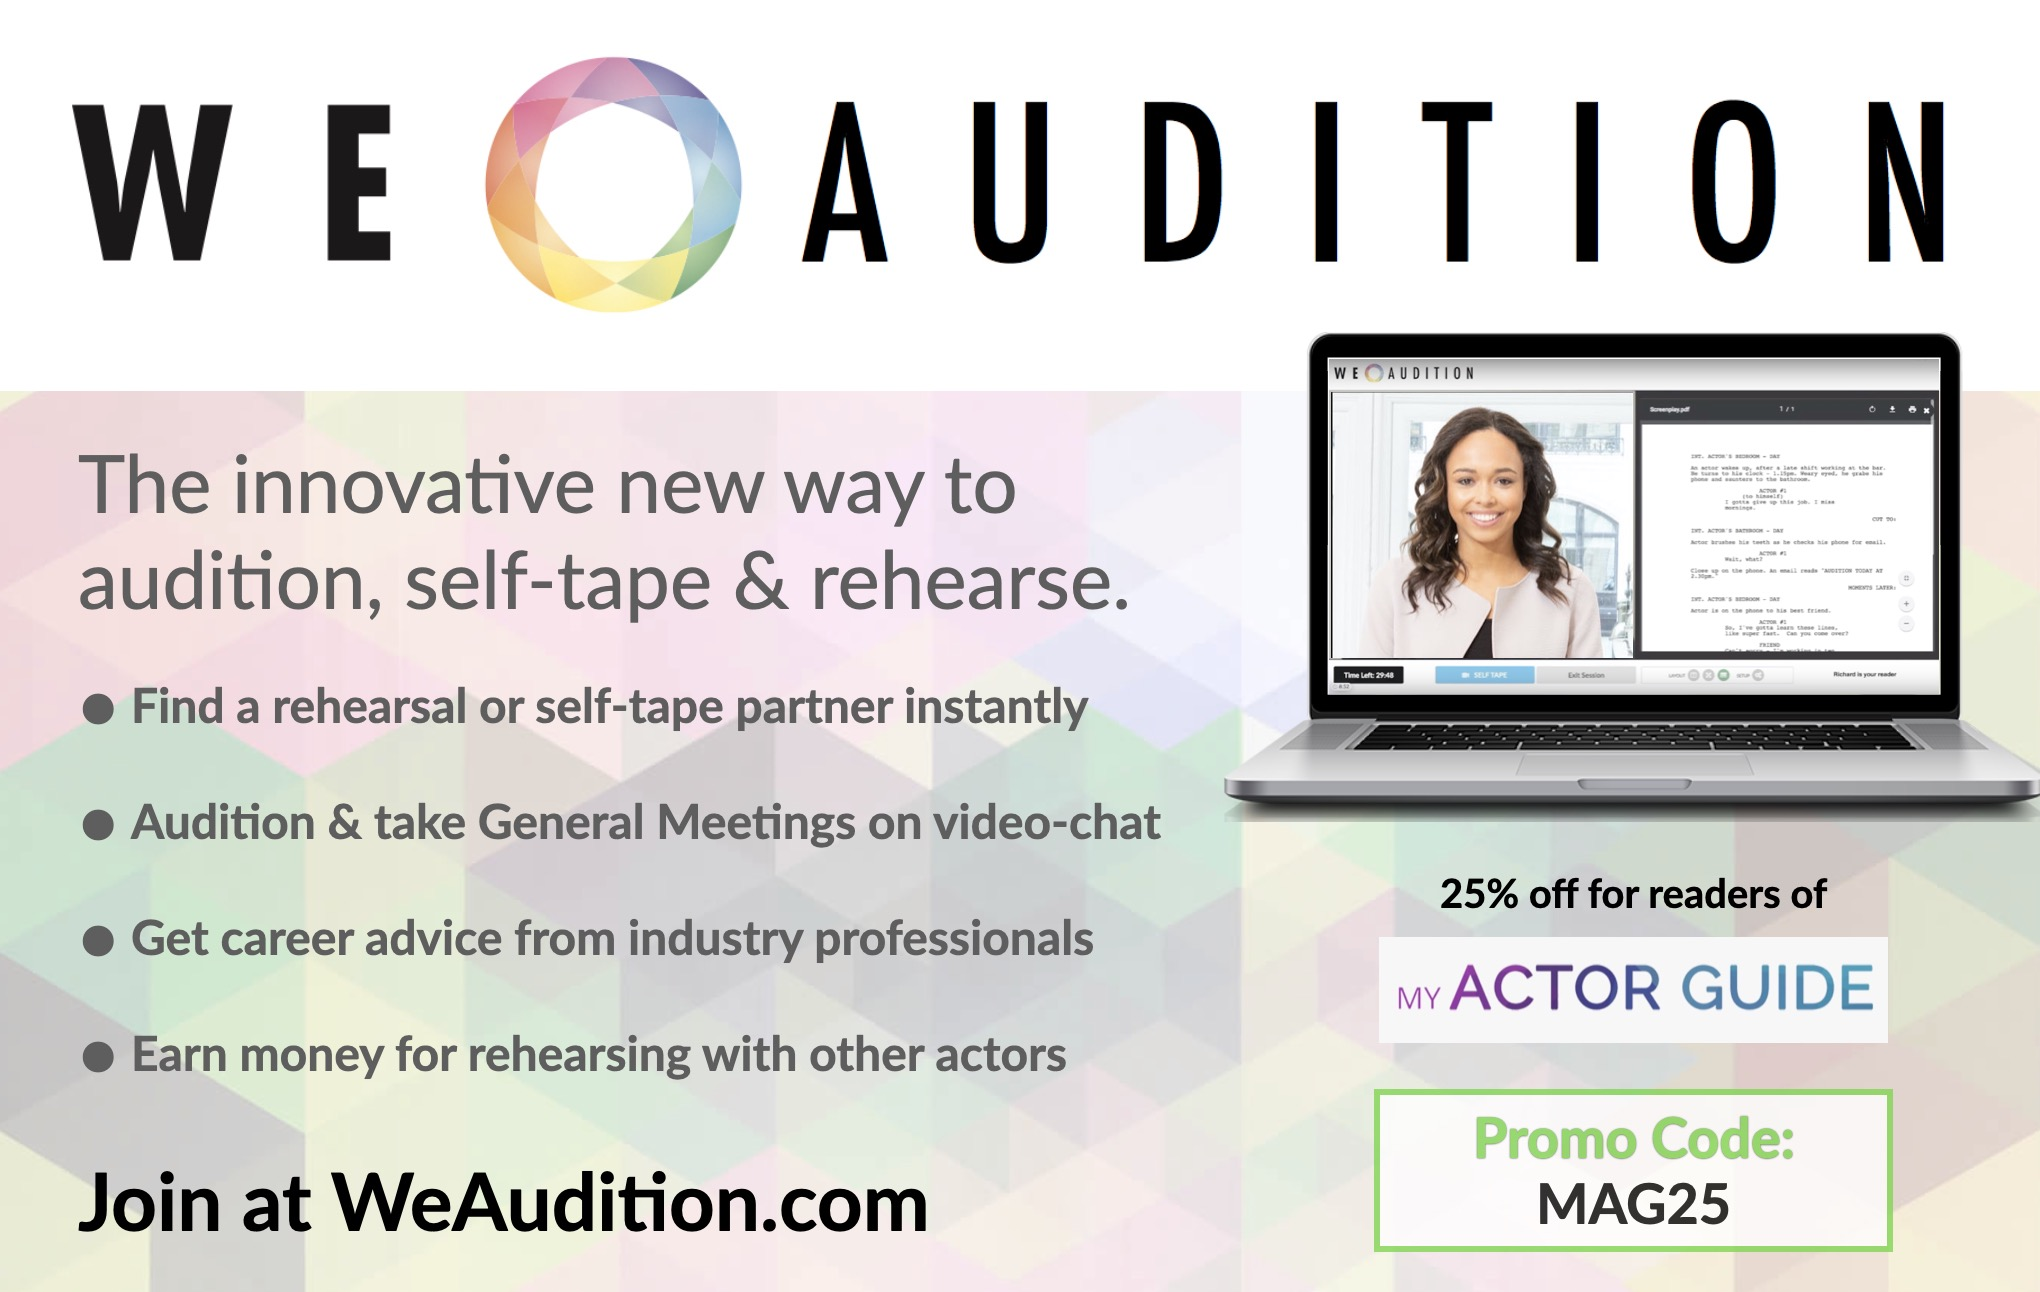 Find a self-tape audition partner. Meet other actors and make money auditioning with WeAudition discount code at MyActorGuide.com